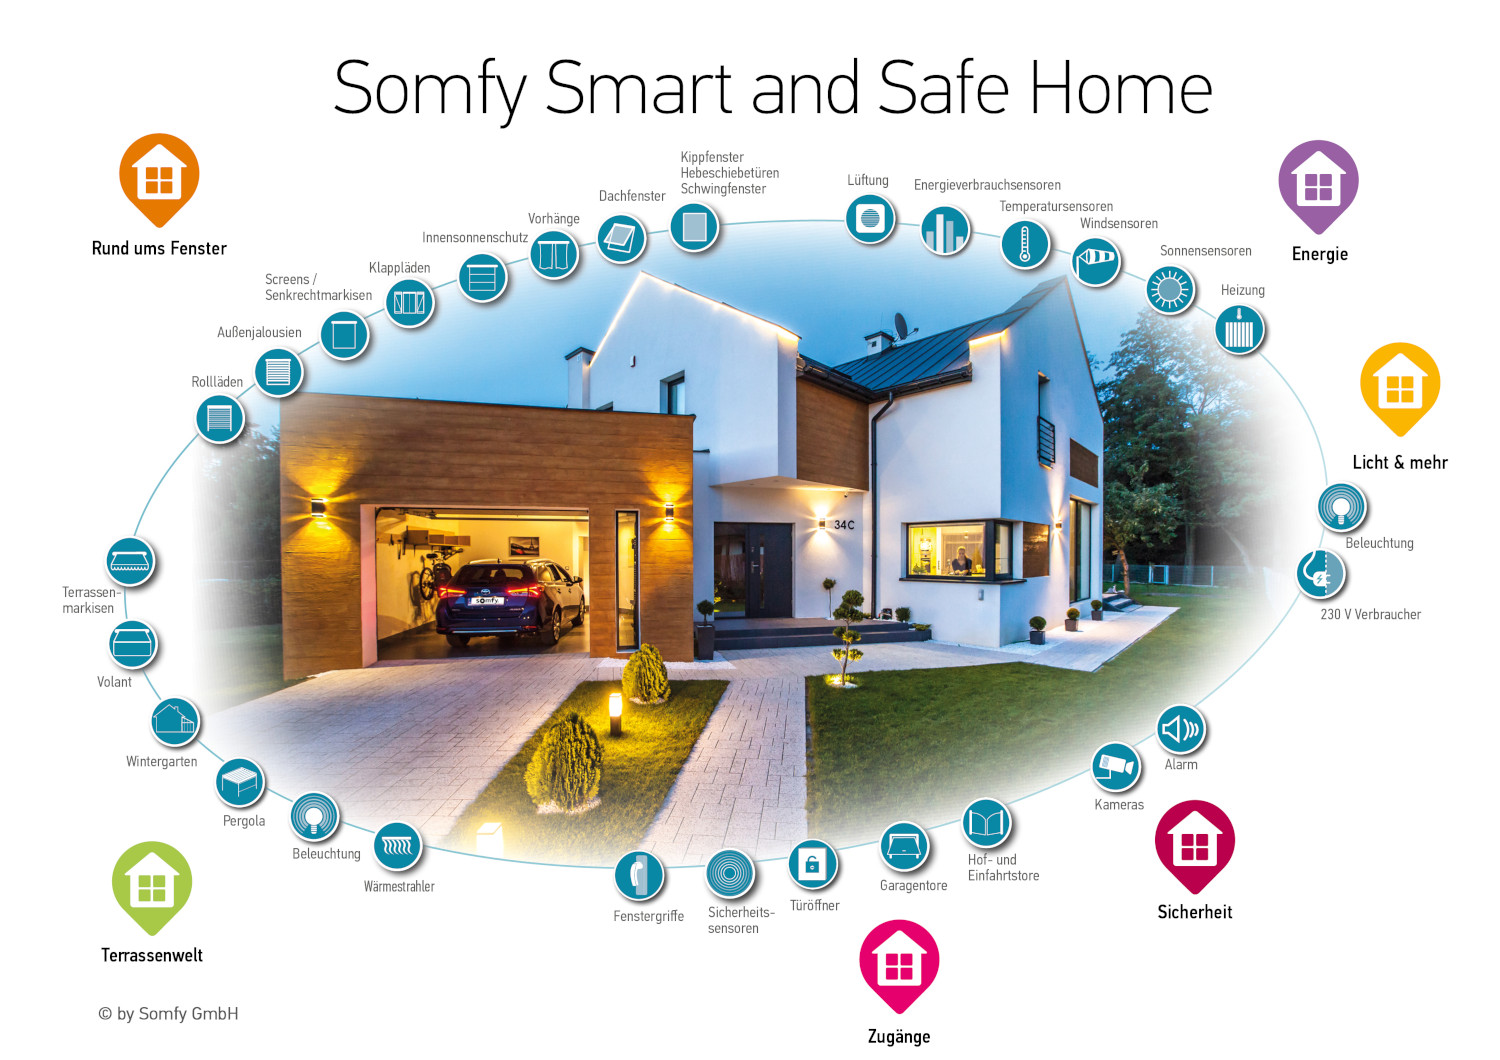 Somfy-Smart-Home-Haus_1500x1060